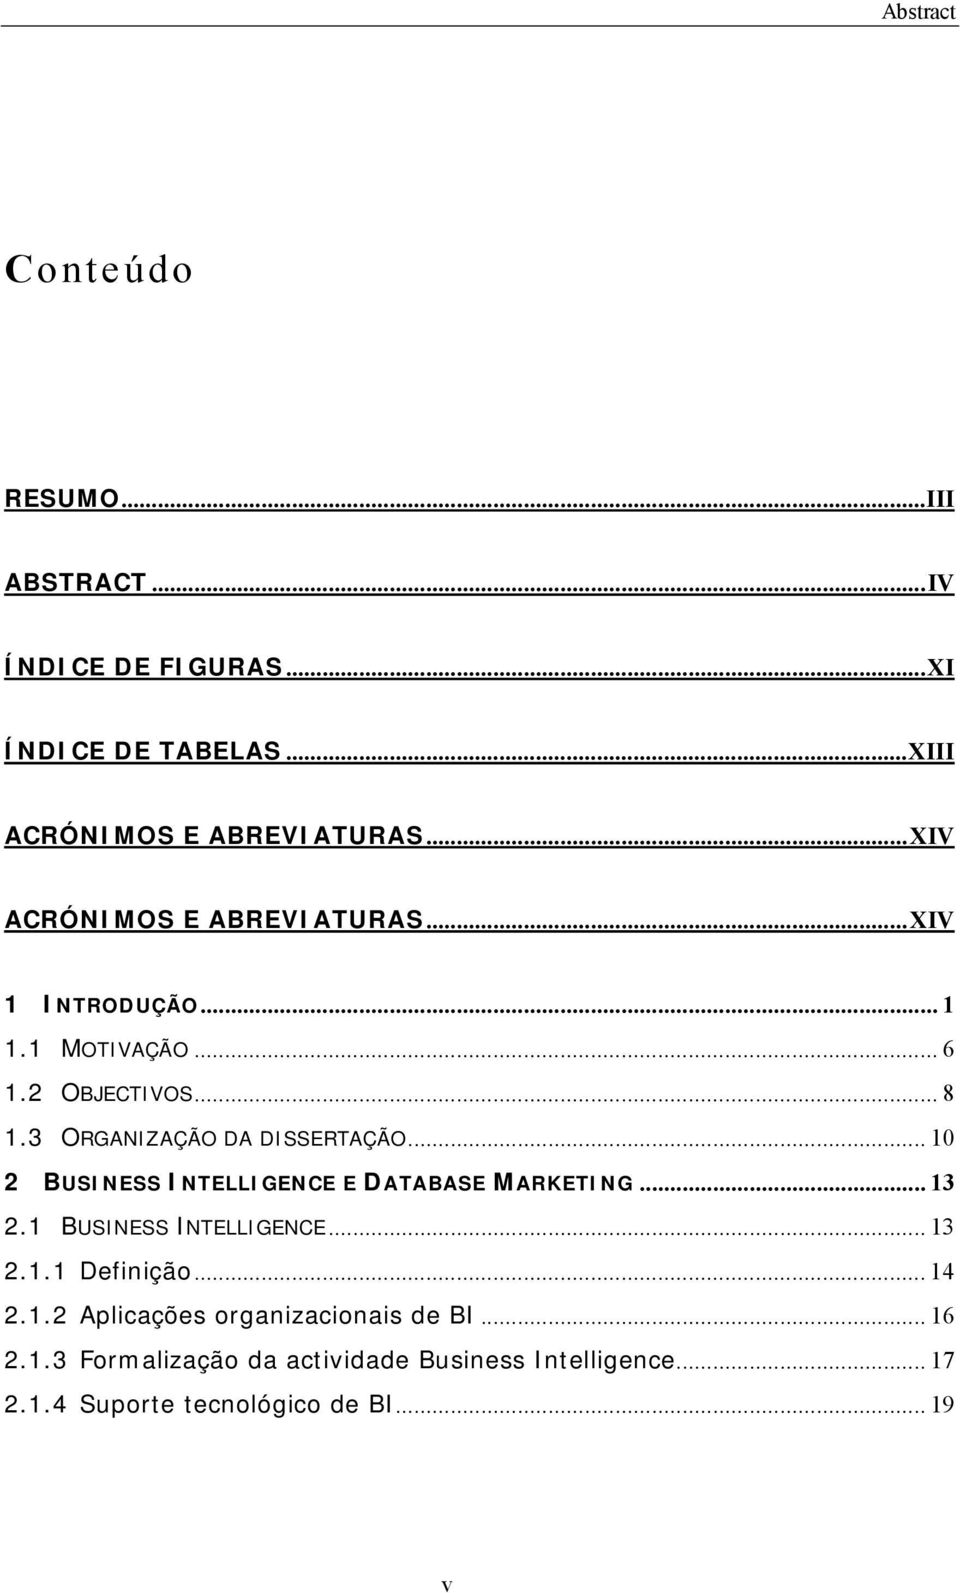 .. 10 2 BUSINESS INTELLIGENCE E DATABASE MARKETING... 13 2.1 BUSINESS INTELLIGENCE... 13 2.1.1 Definição... 14 2.1.2 Aplicações organizacionais de BI.